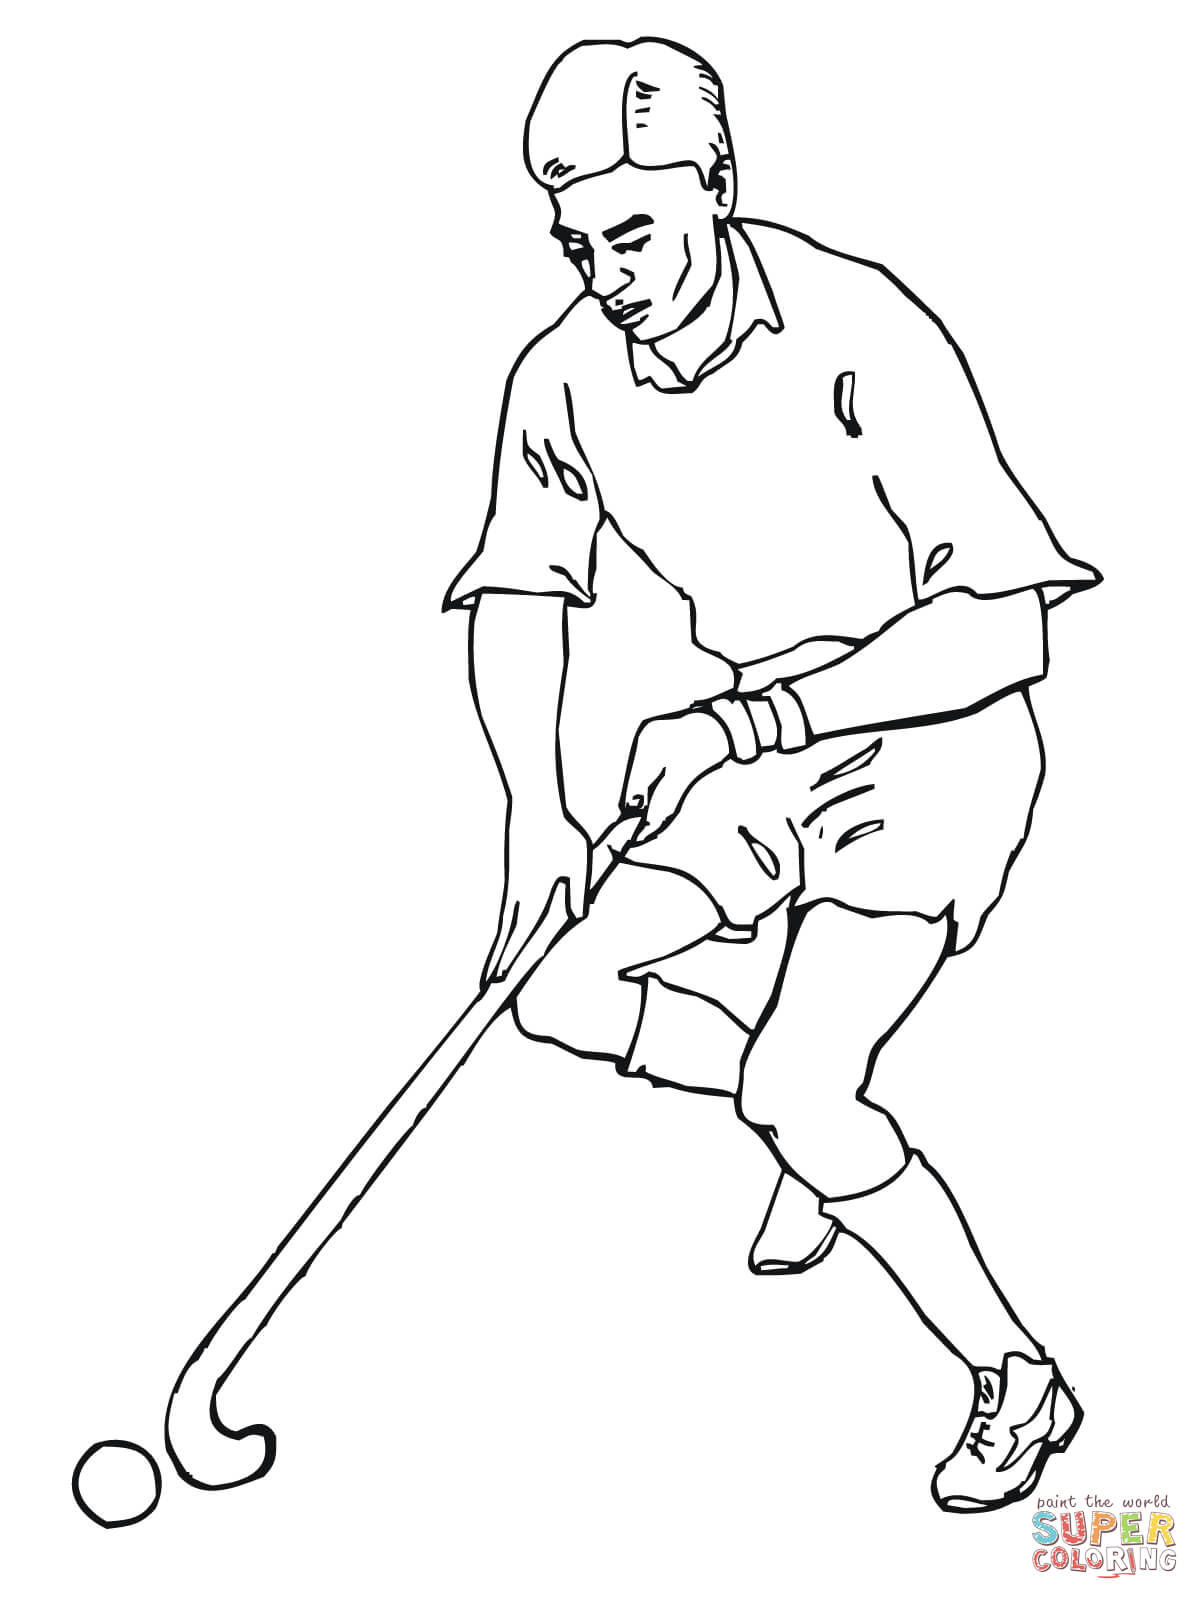 Hockey Players Drawing At Getdrawings